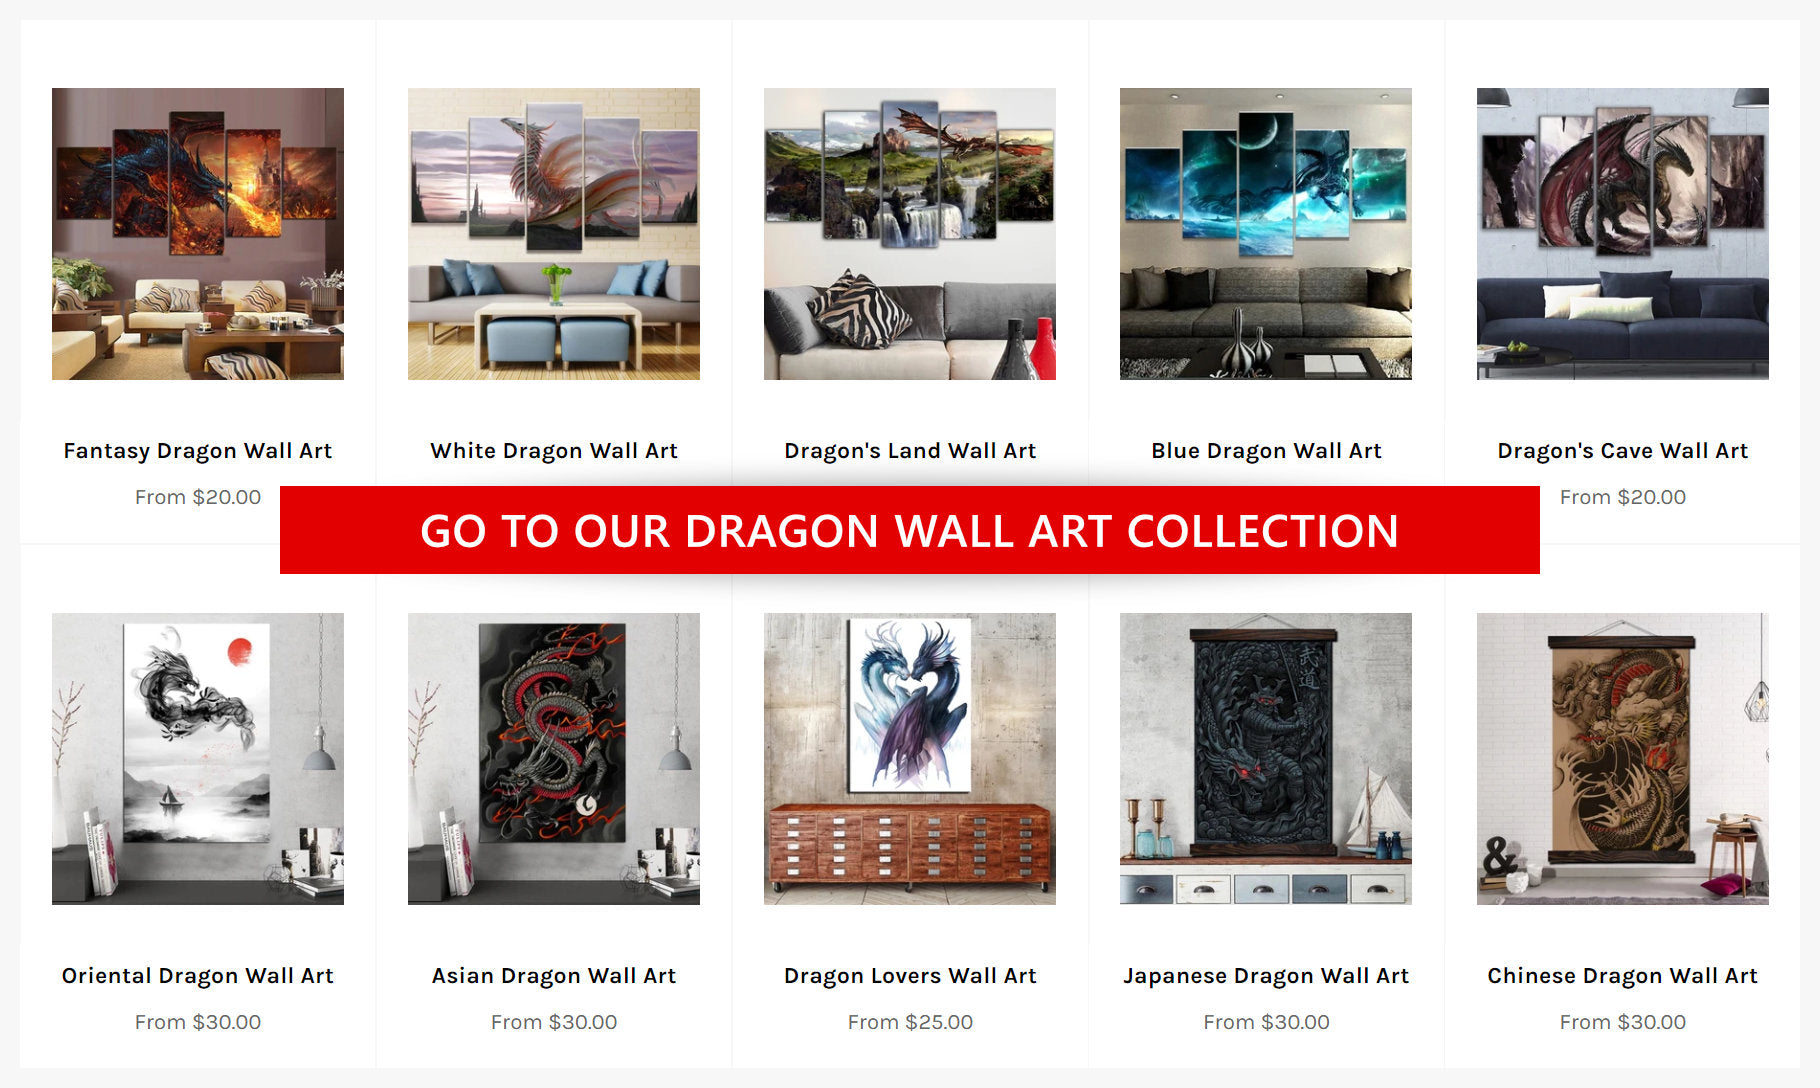 The Dragon Shop's collection of Dragon Wall Art